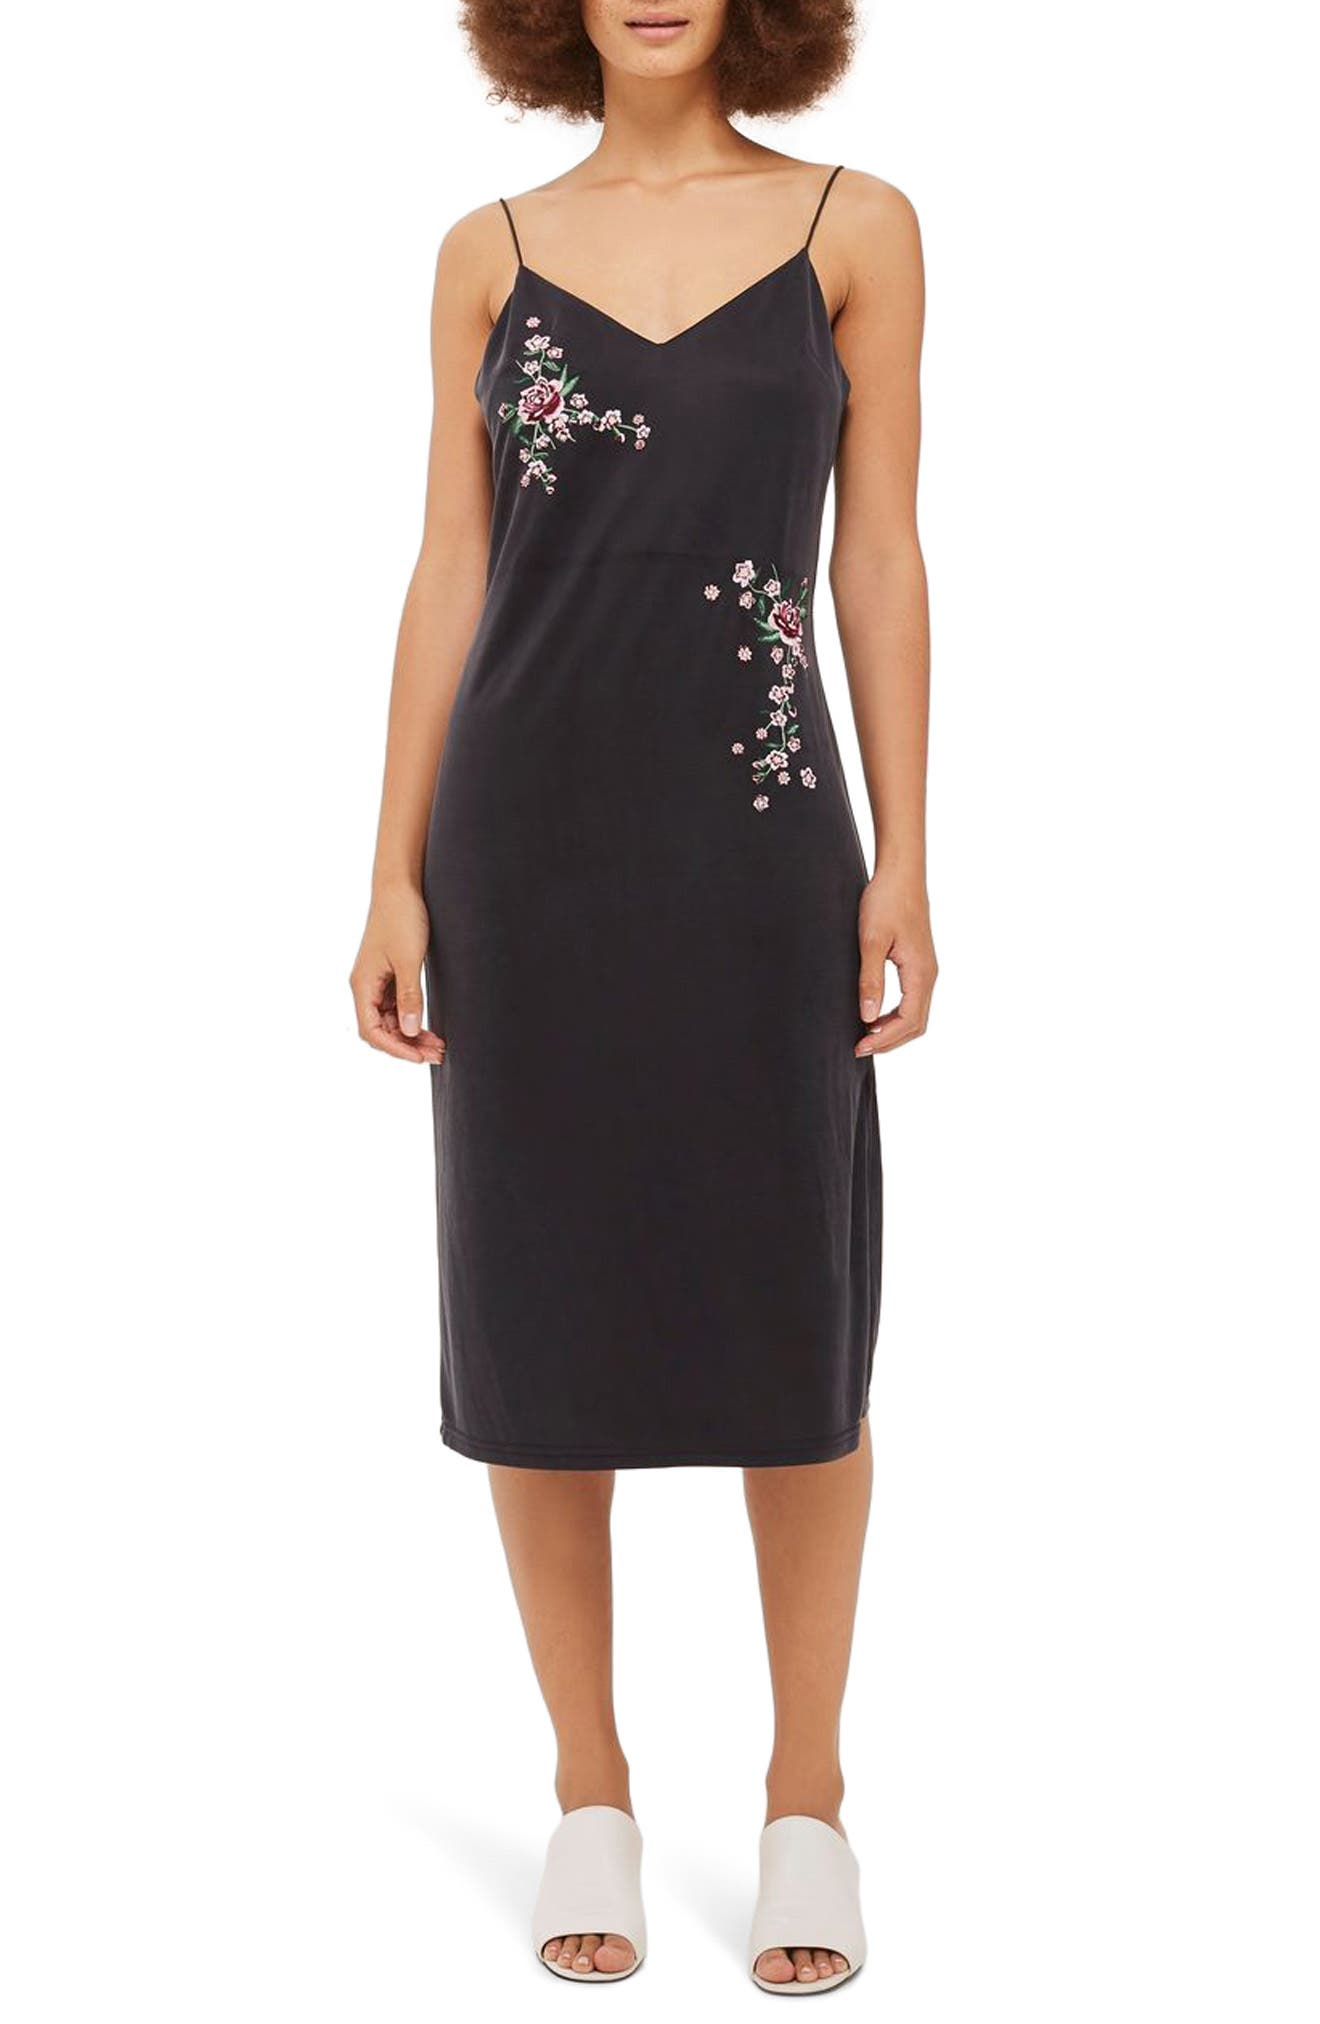 Topshop Embroidered Slipdress